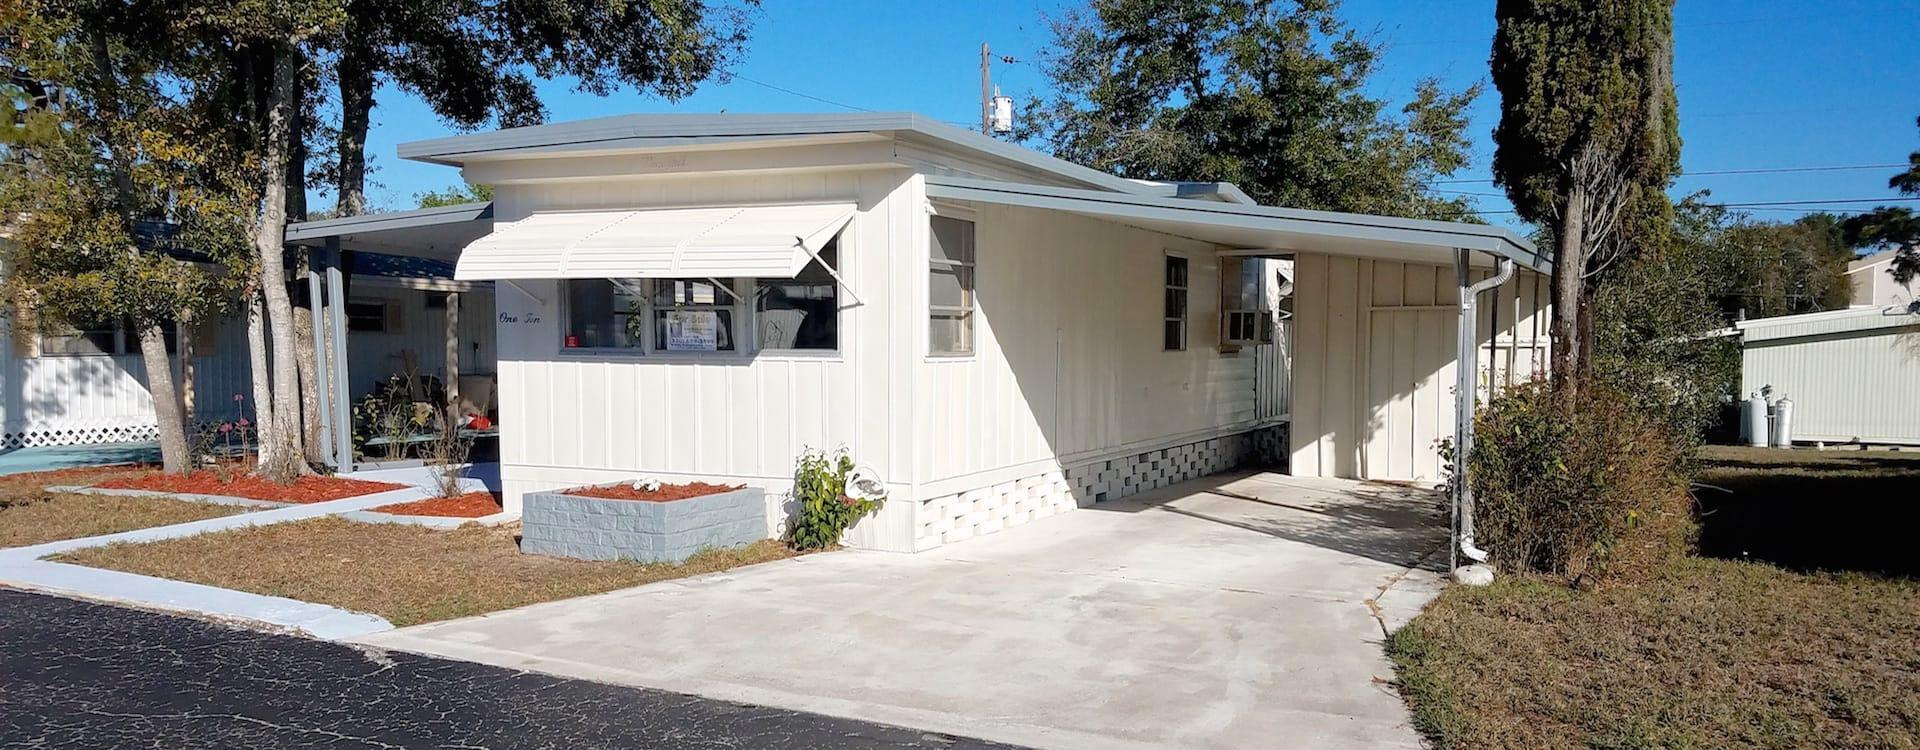 Mobile-Home-For-Sale-20170126-001-Wide Palm Harbor Triple Wide Mobile Homes on used double wide mobile homes, 20 feet wide single homes, 1995 double wide mobile homes, log style mobile homes, rustic double wide mobile homes, triple wide mobile homes, trible wide moible homes, harbor mobile homes, cool log homes, repo double wide mobile homes, luxury double wide mobile homes,